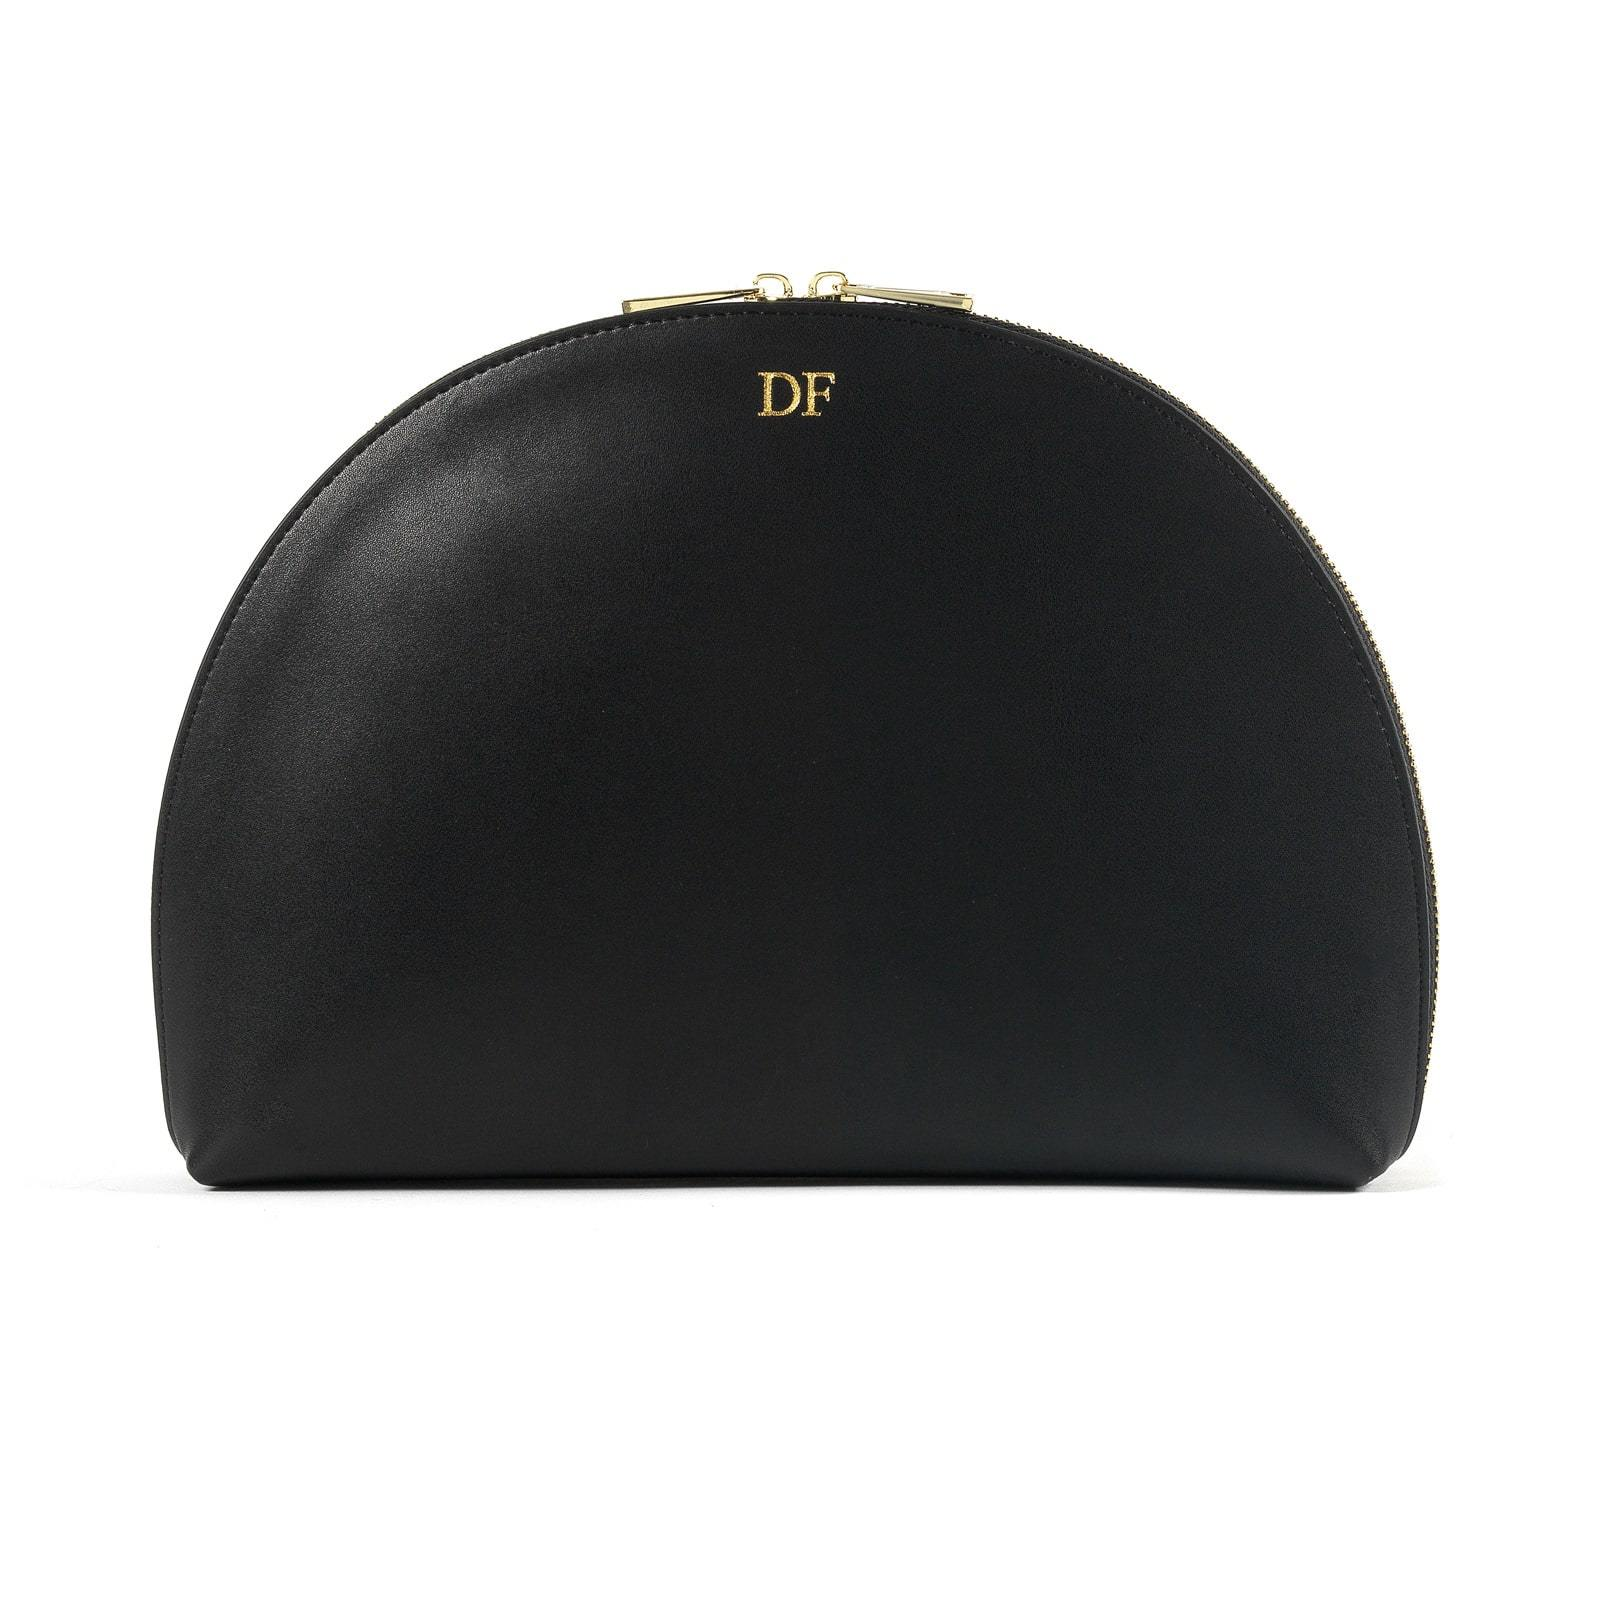 Personalised Black Smooth Leather Half Moon Clutch